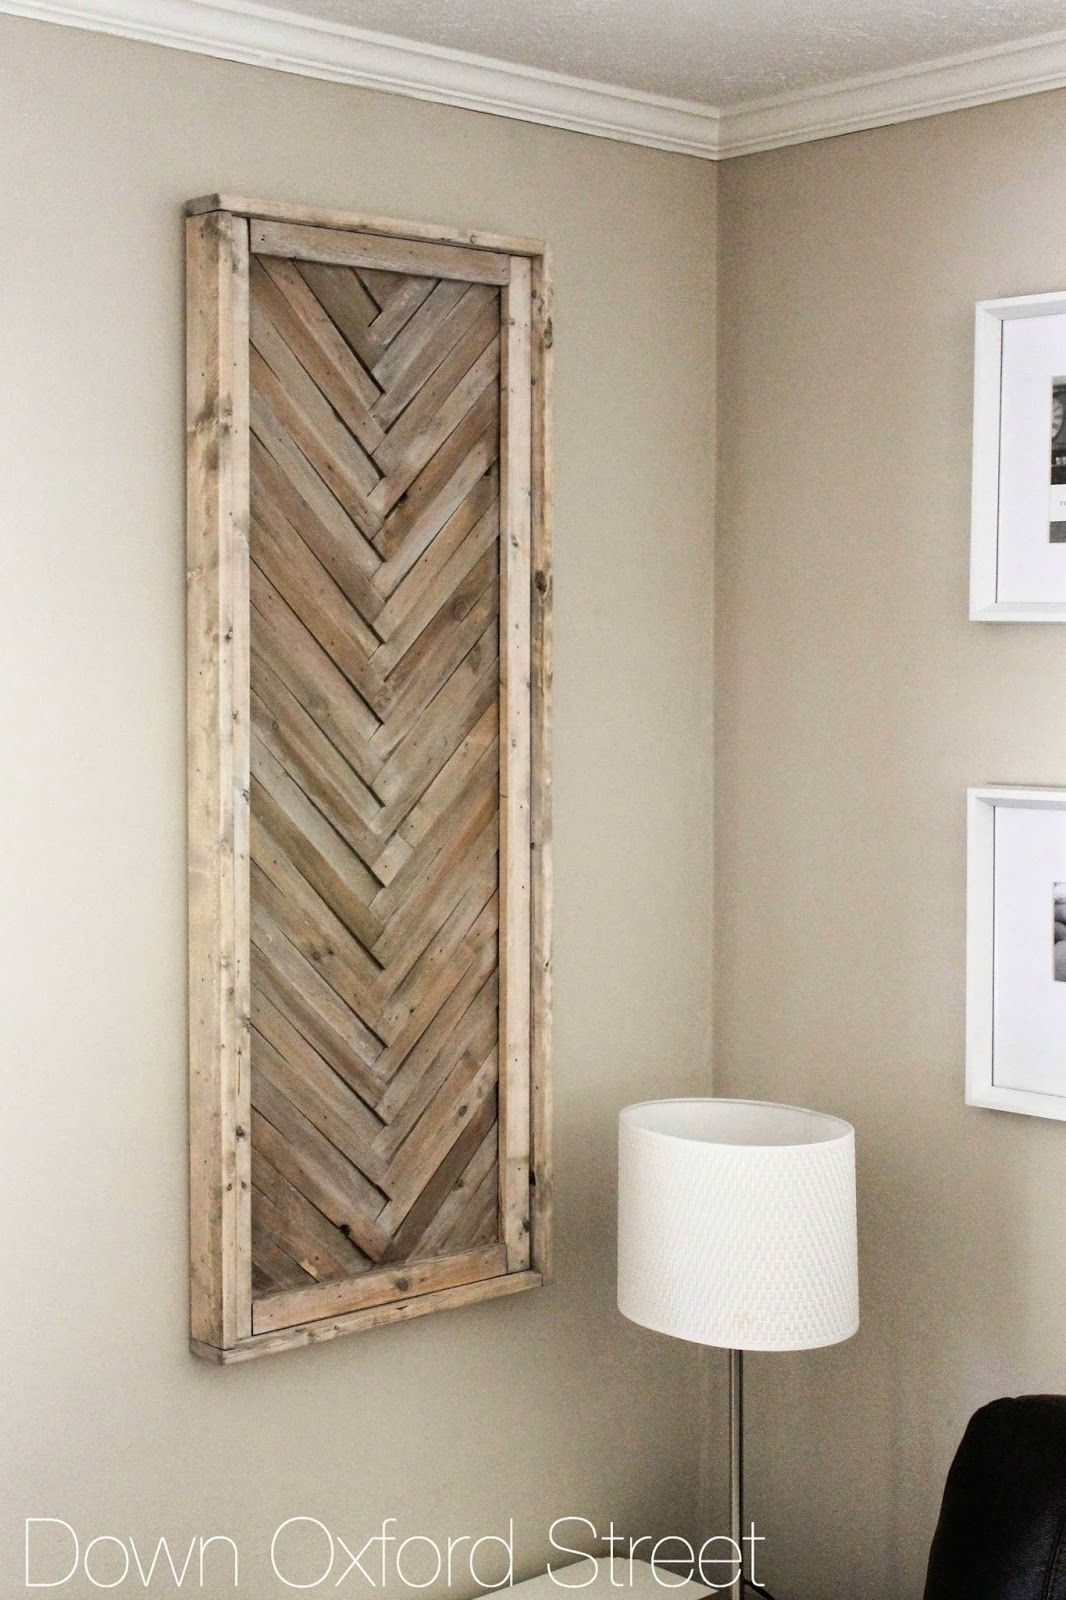 Down Oxford Street: Diy Wood Shim Wall Art | Diy Wood | Pinterest Inside Latest Diy Wood Wall Art (View 17 of 20)